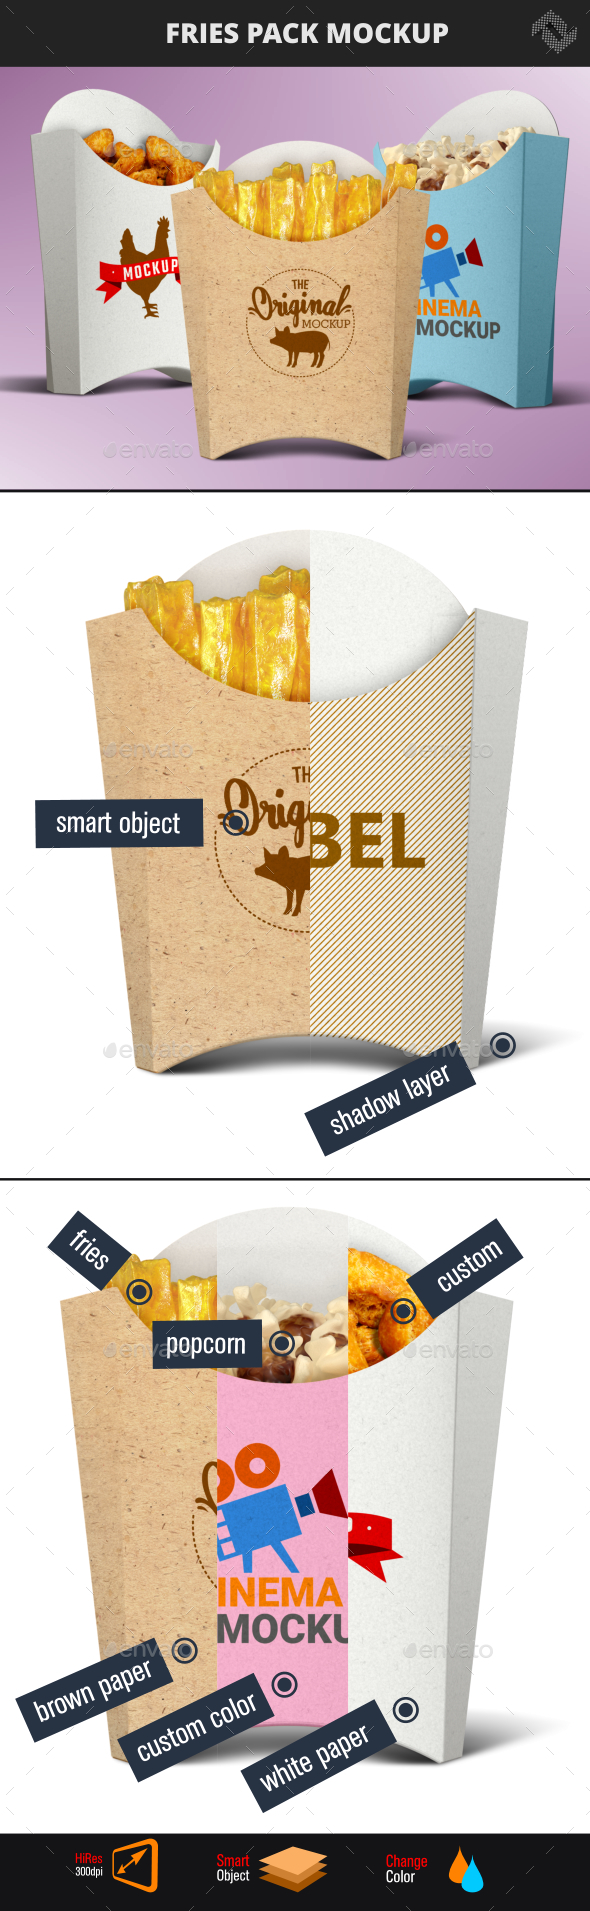 Recycled Paper French Fries Pack Mockup - Product Mock-Ups Graphics